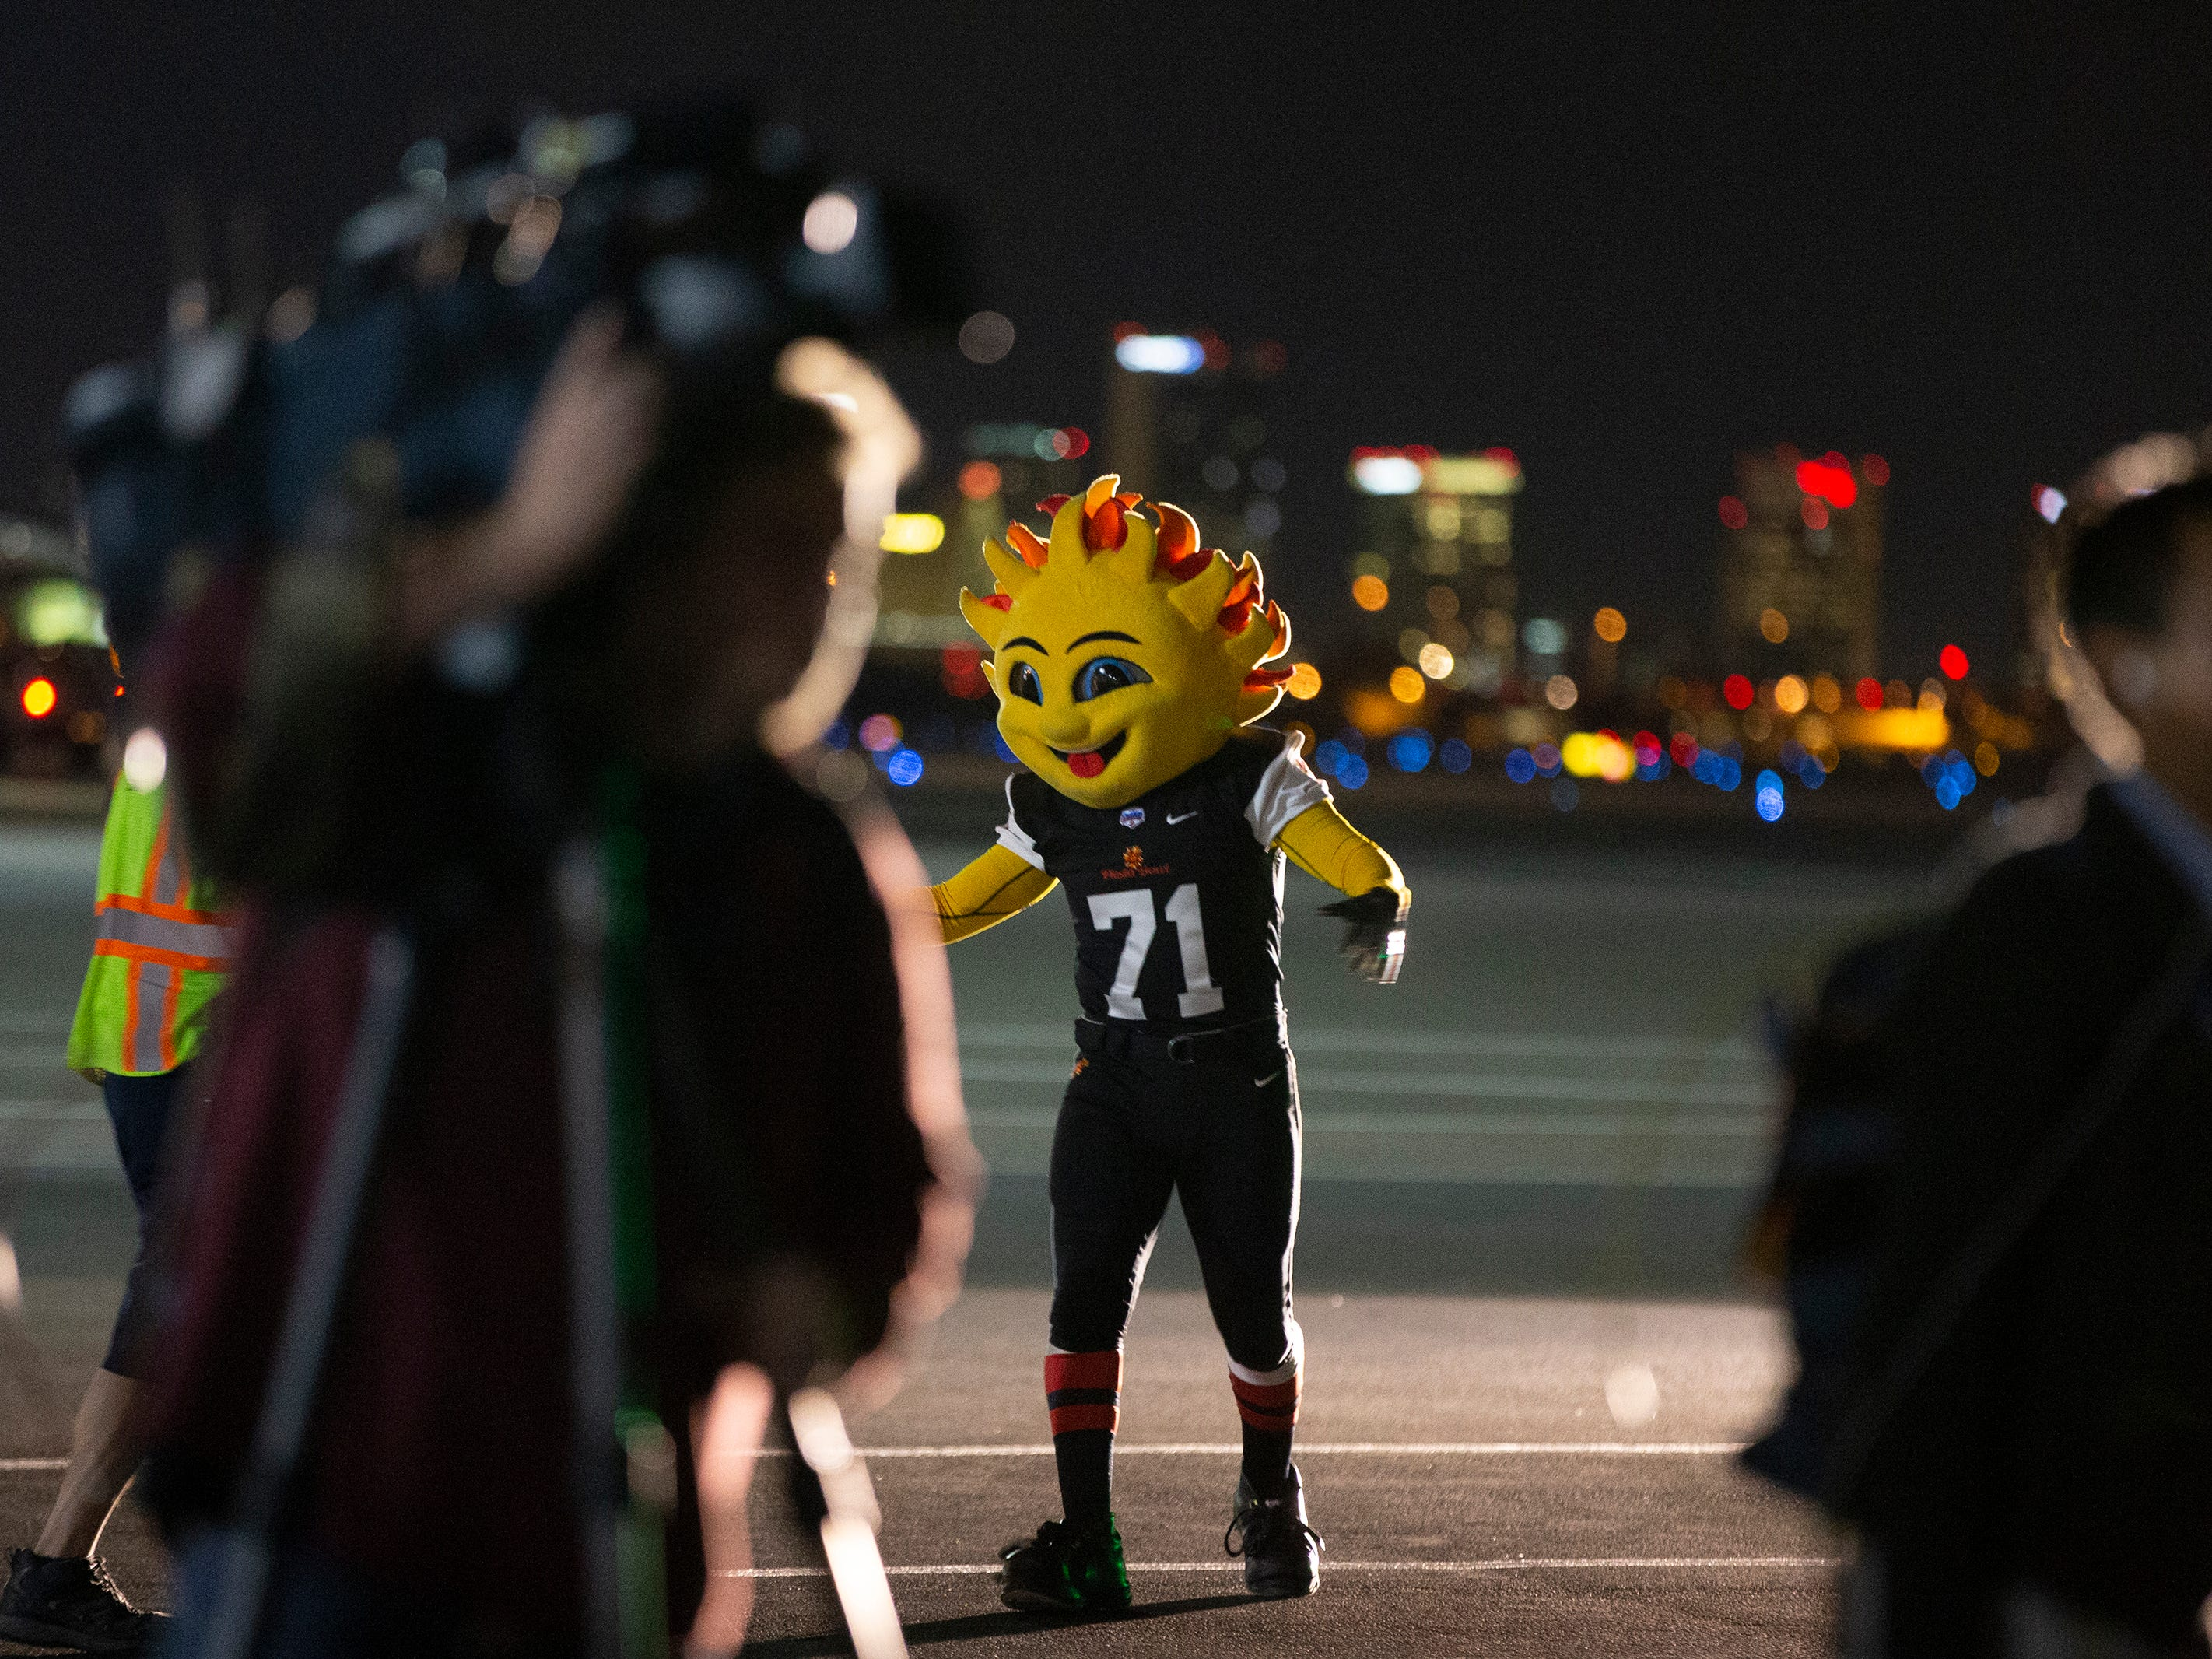 Spirit, the Fiesta Bowl mascot, waits for LSU to arrive at Sky Harbor International Airport in Phoenix on December 27. LSU will face Central Florida in the Fiesta Bowl on New Year's Day